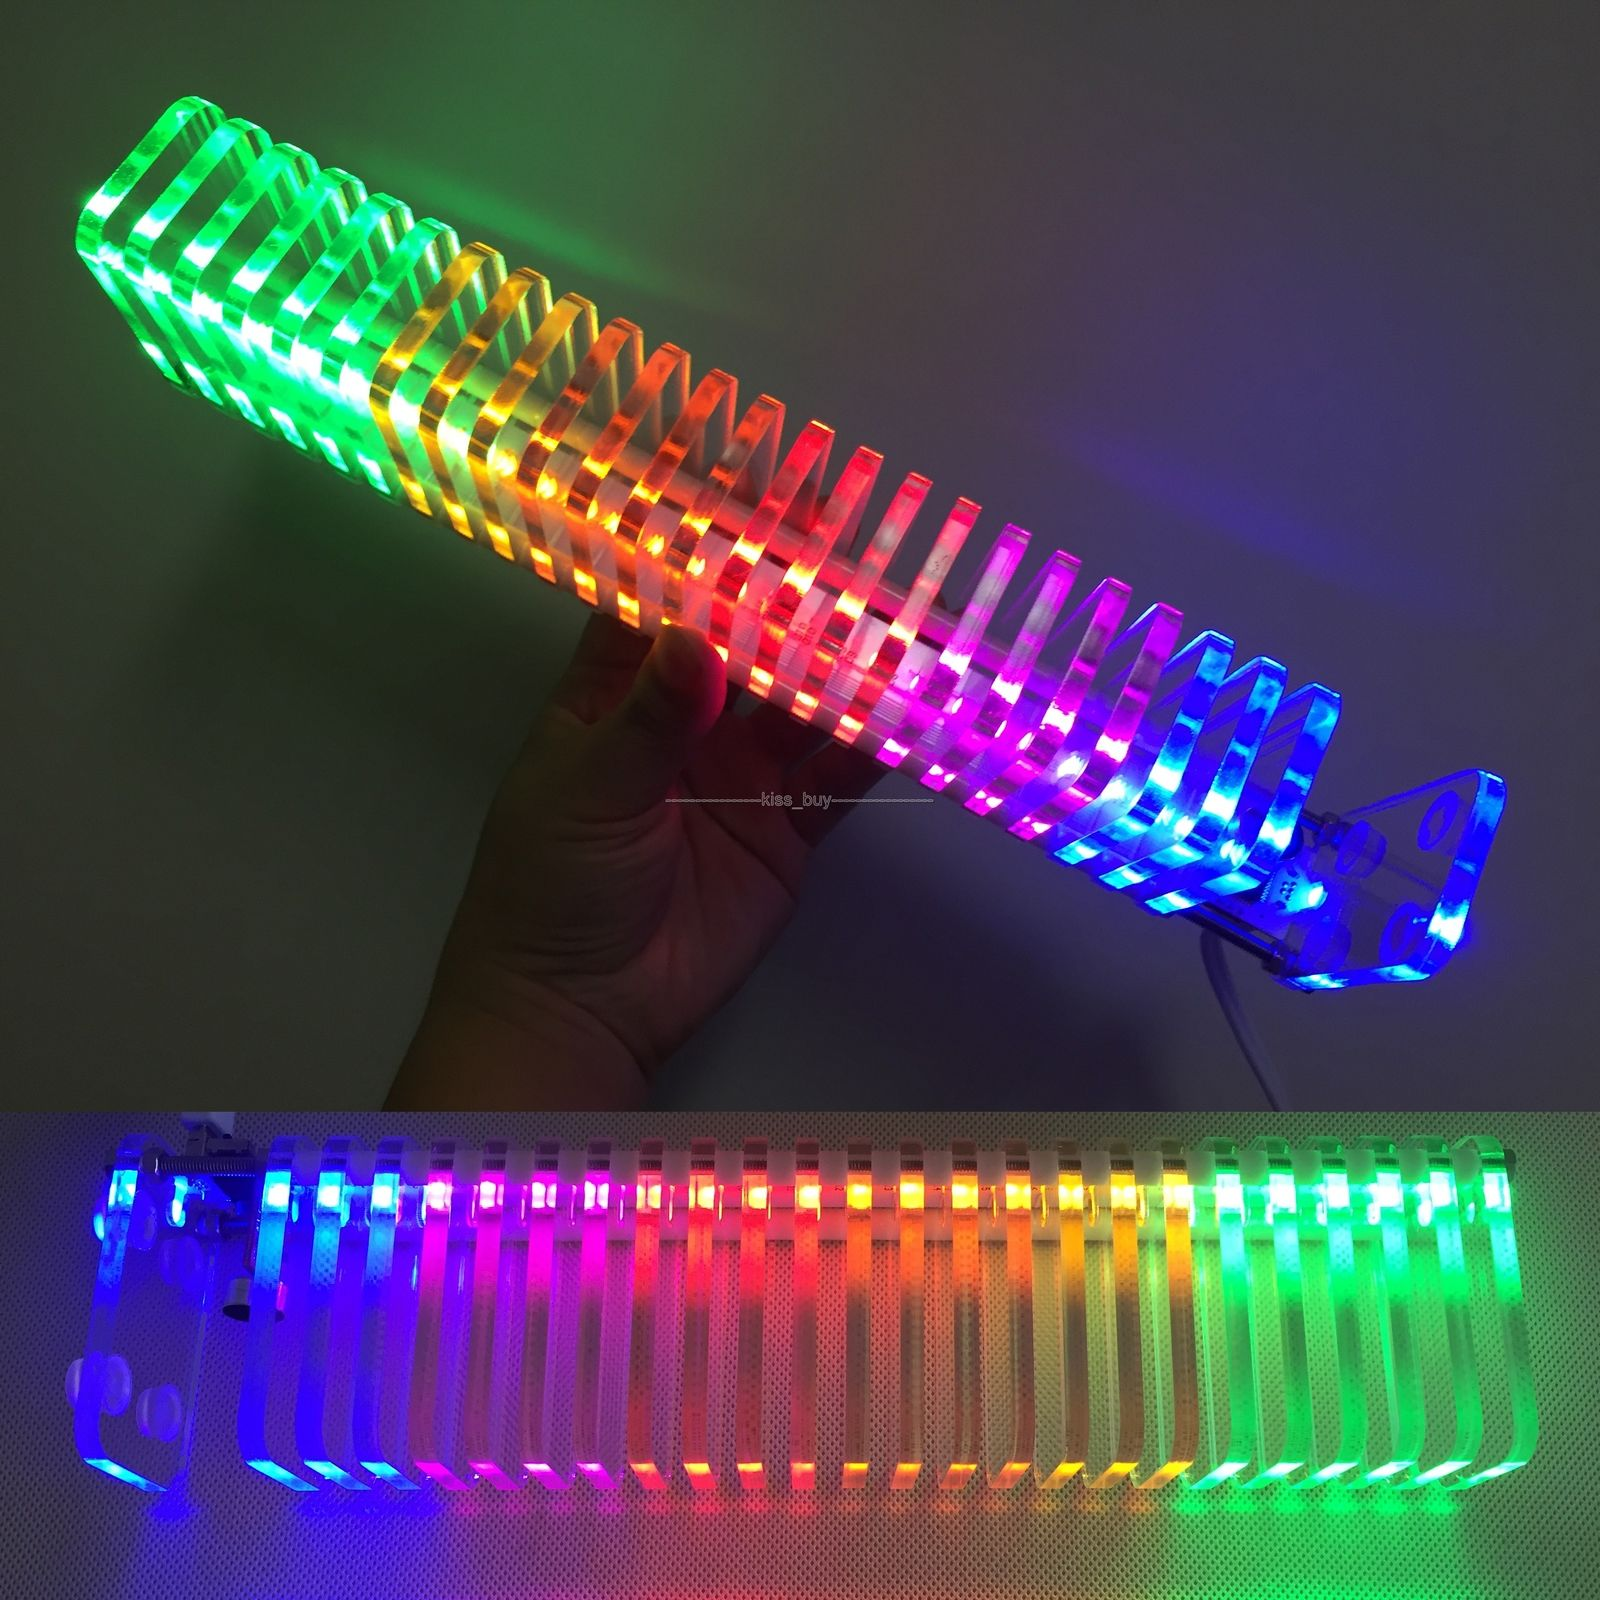 DIY KITS KS25 Voice control Fantasy Crystal light cube LED level display music spectrum rhythm display